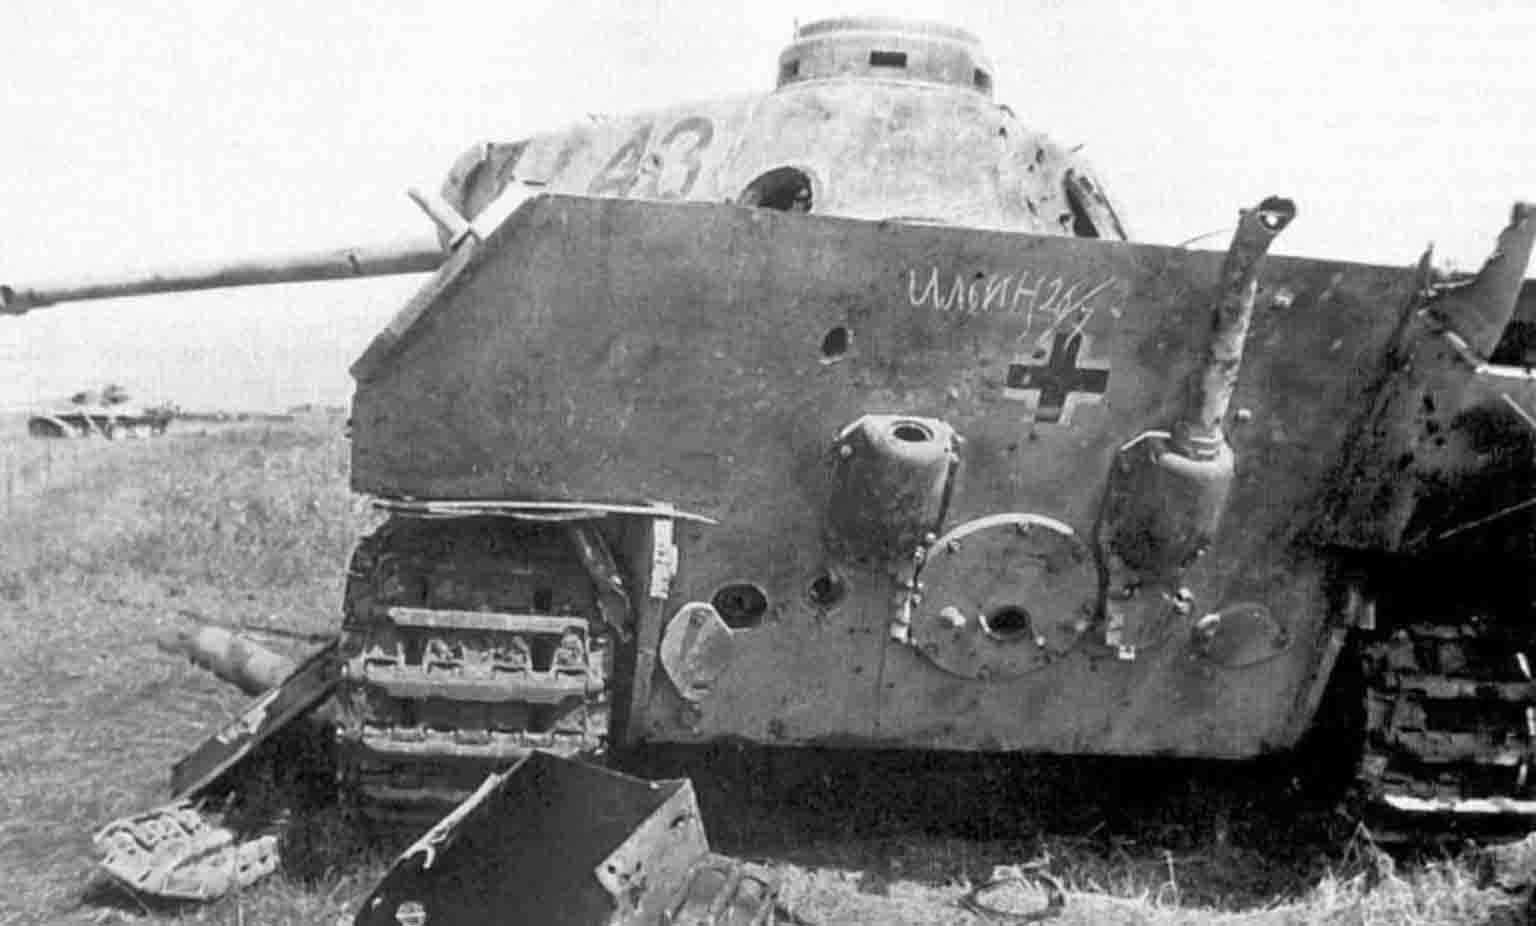 Destroyed Panther